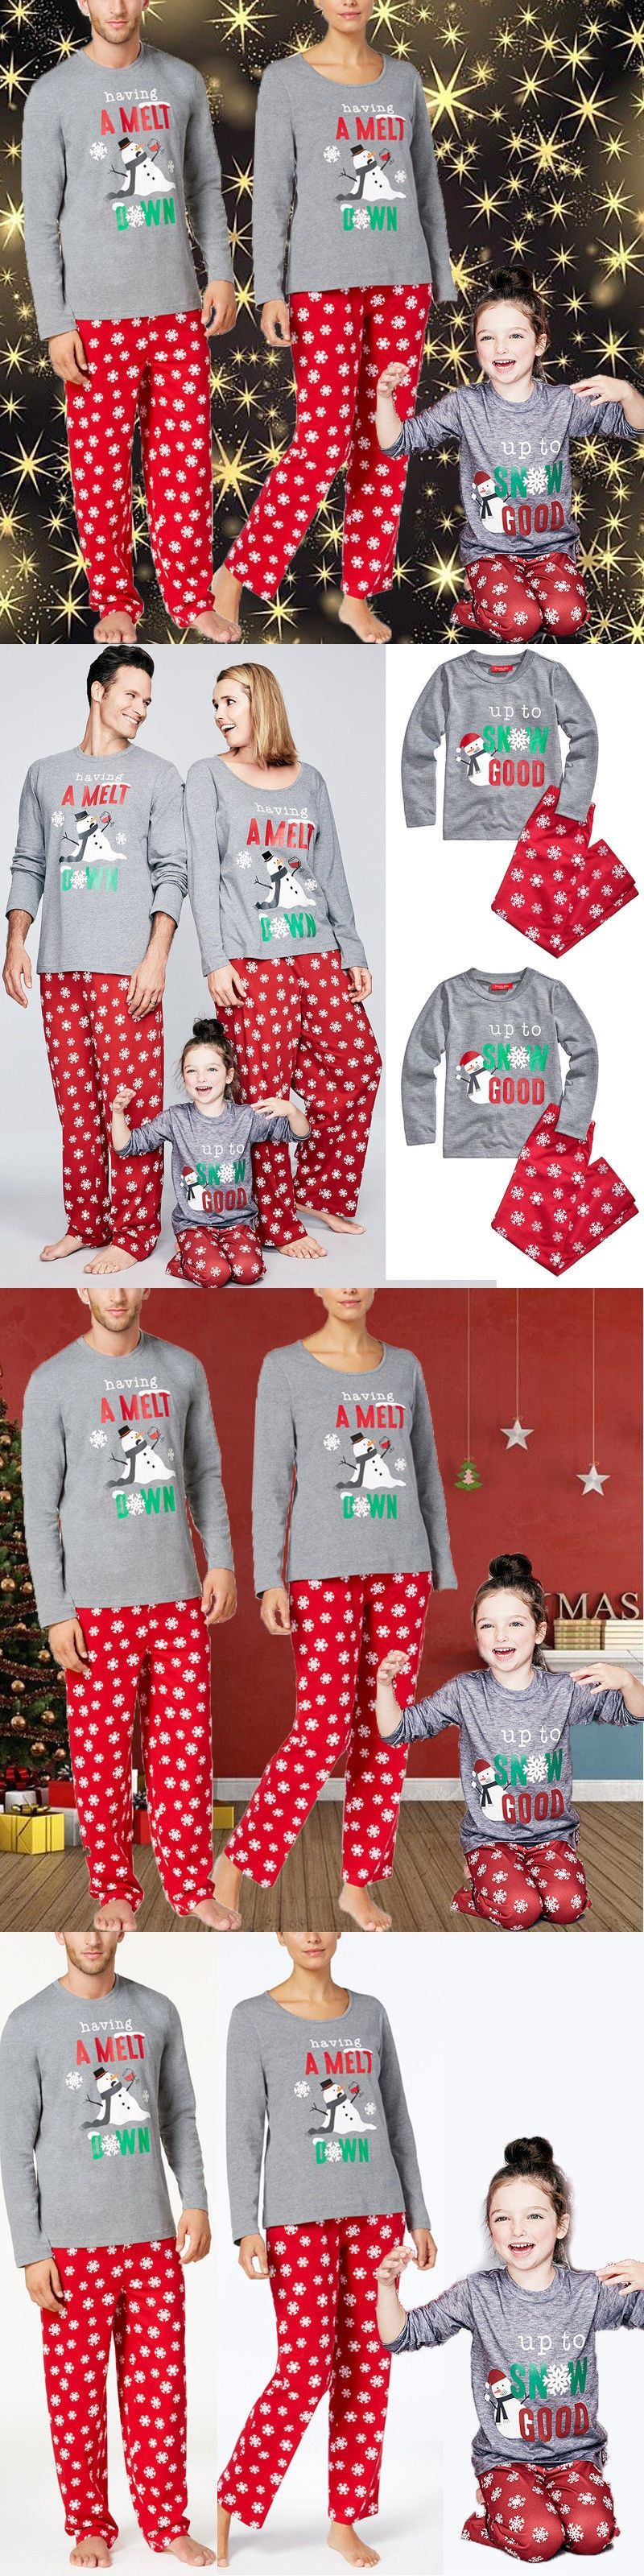 5f5b0394b4 Family Matching pyjamas Set Xmas Family Match Pajamas Set 2017 New Arrival  Hot Christmas Adult Women